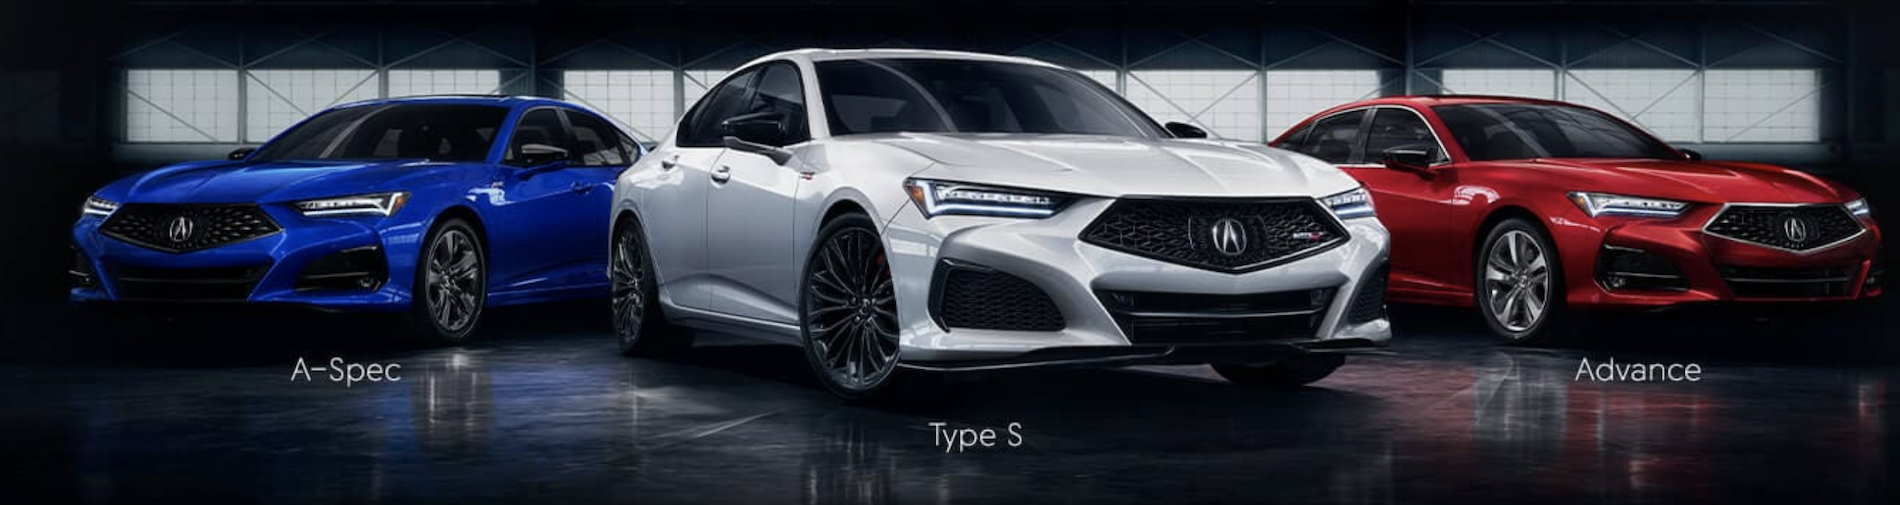 Three 2021 Acura TLX models parked in a row